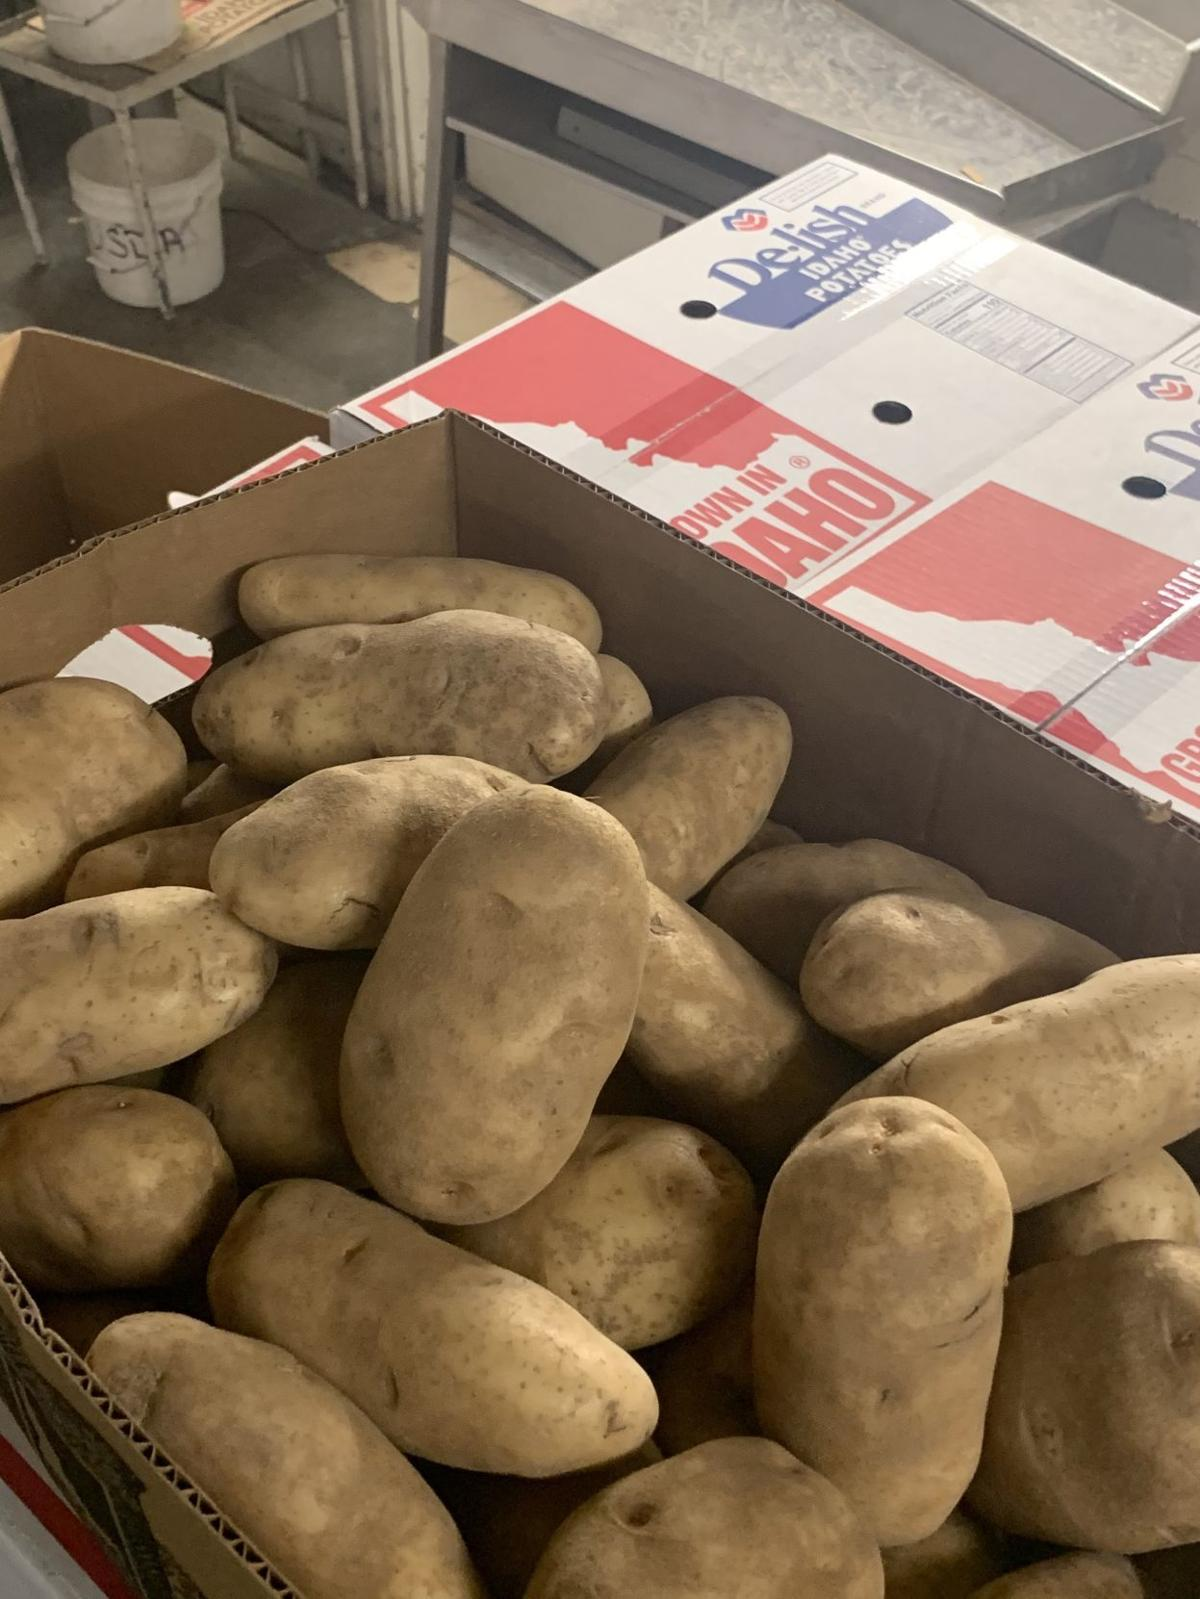 Potato box 1